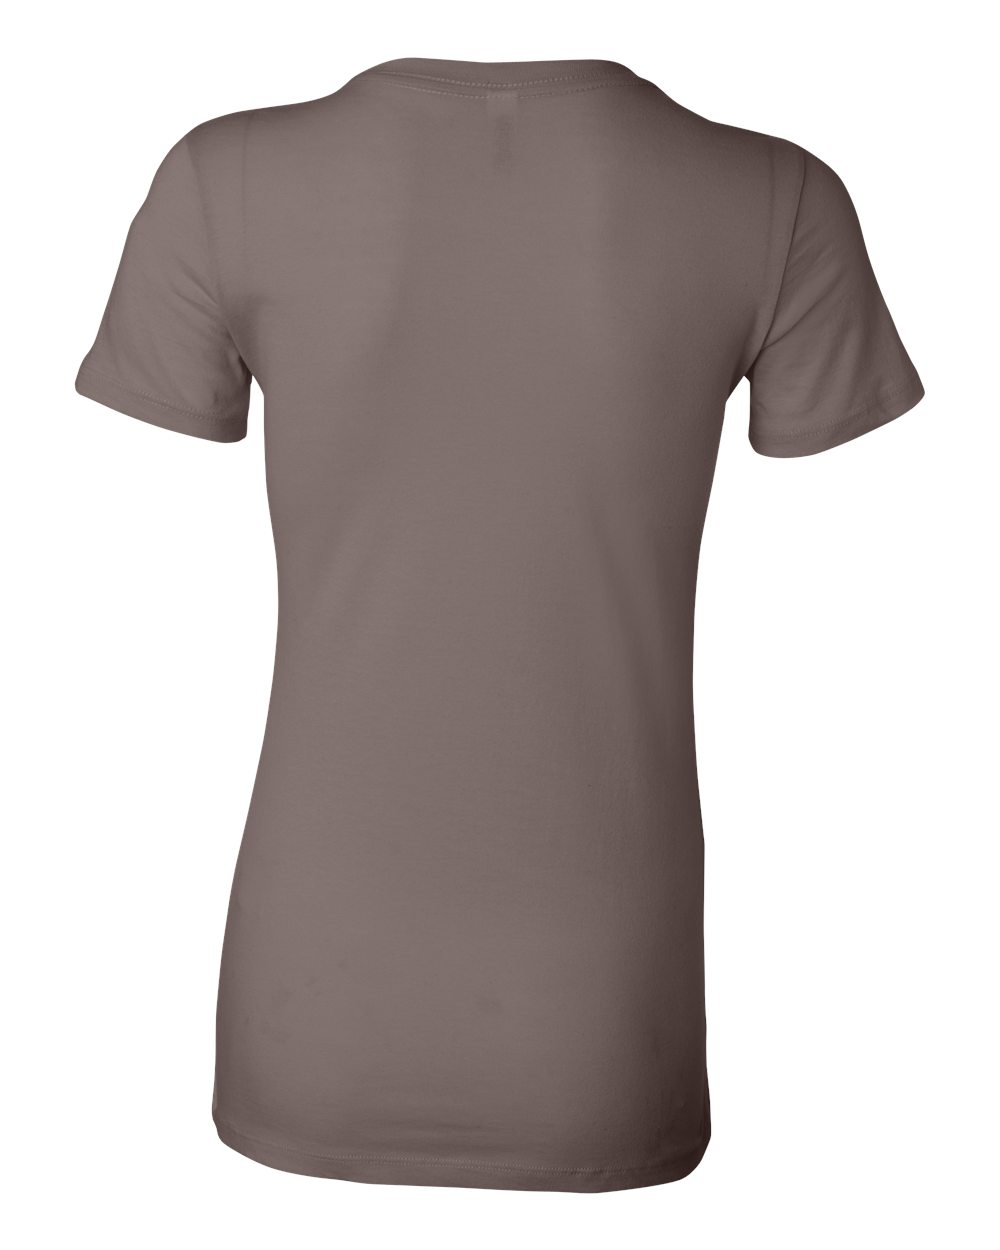 Bella-Canvas-Womens-The-Favorite-T-Shirt-6004-Size-S-2XL thumbnail 124